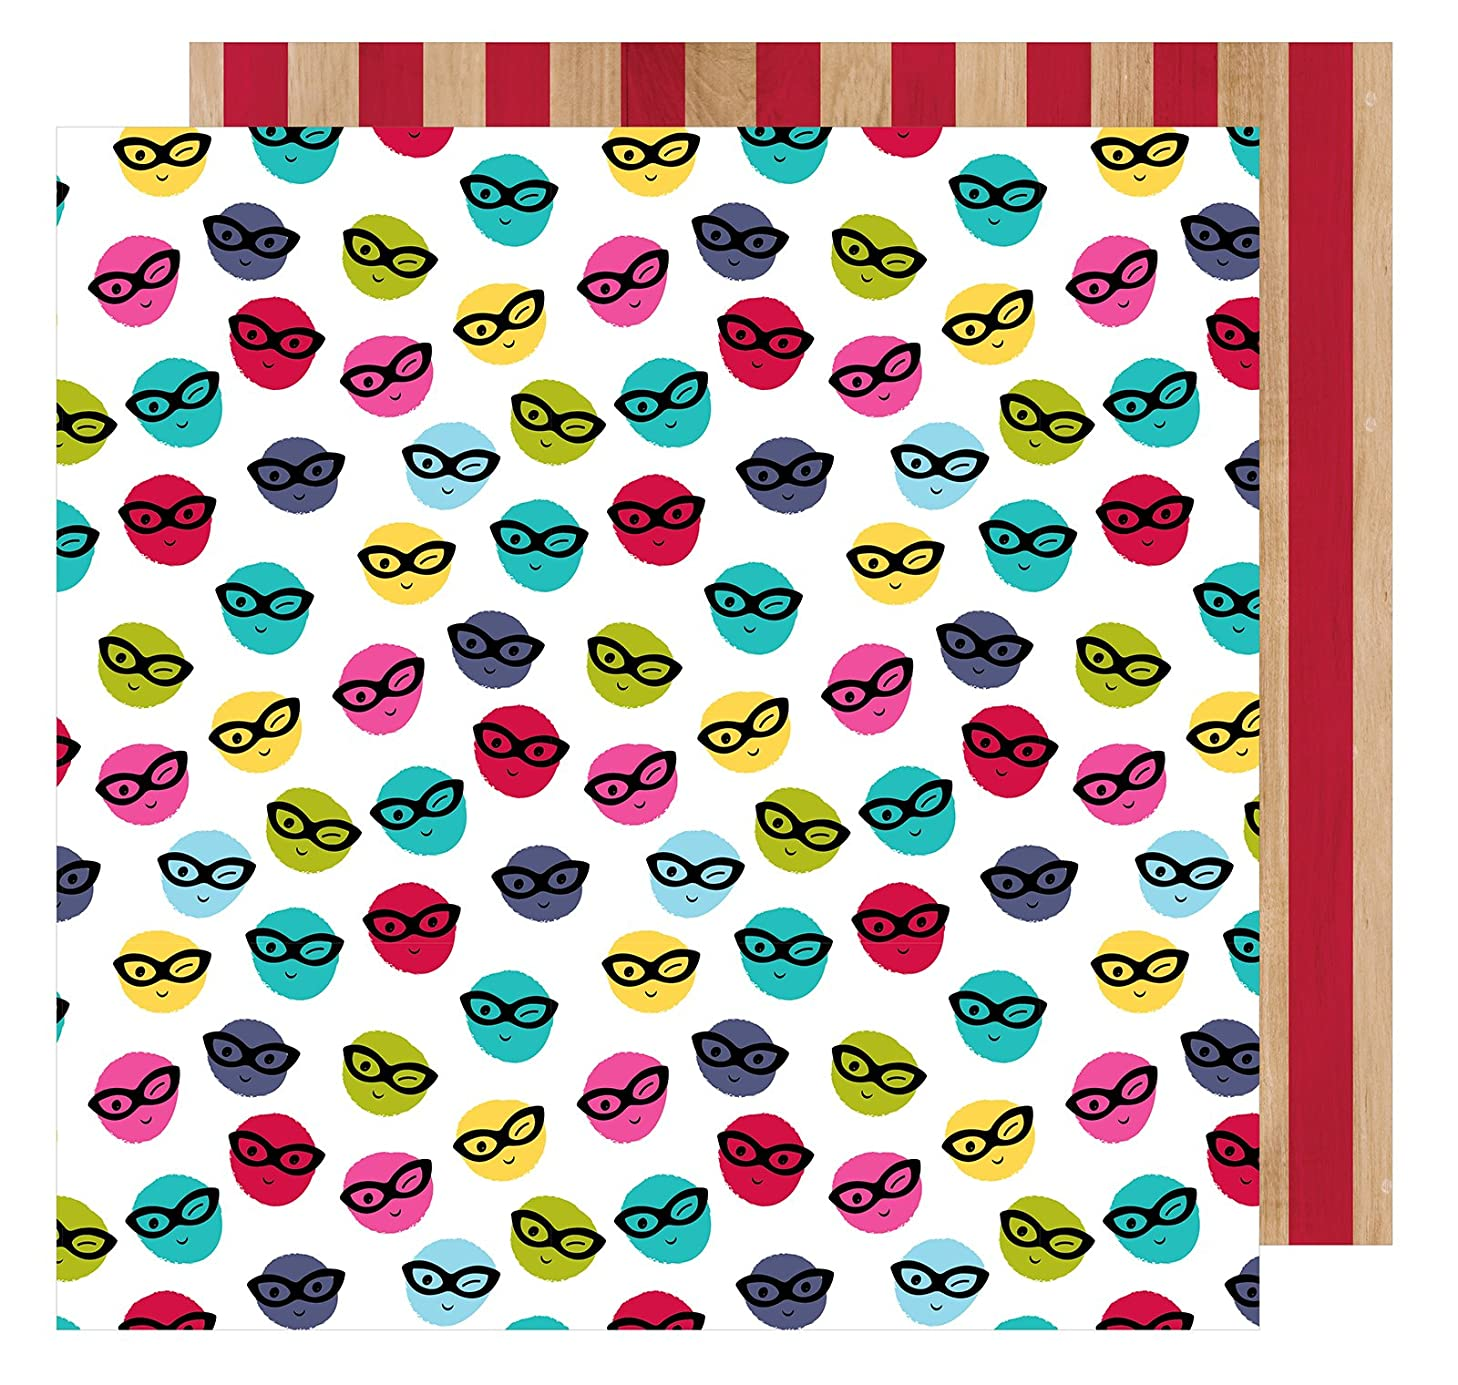 American Crafts Shimelle Glitter Girl 25 Pack of 12 x 12 Inch Paper Go Incognito Piece